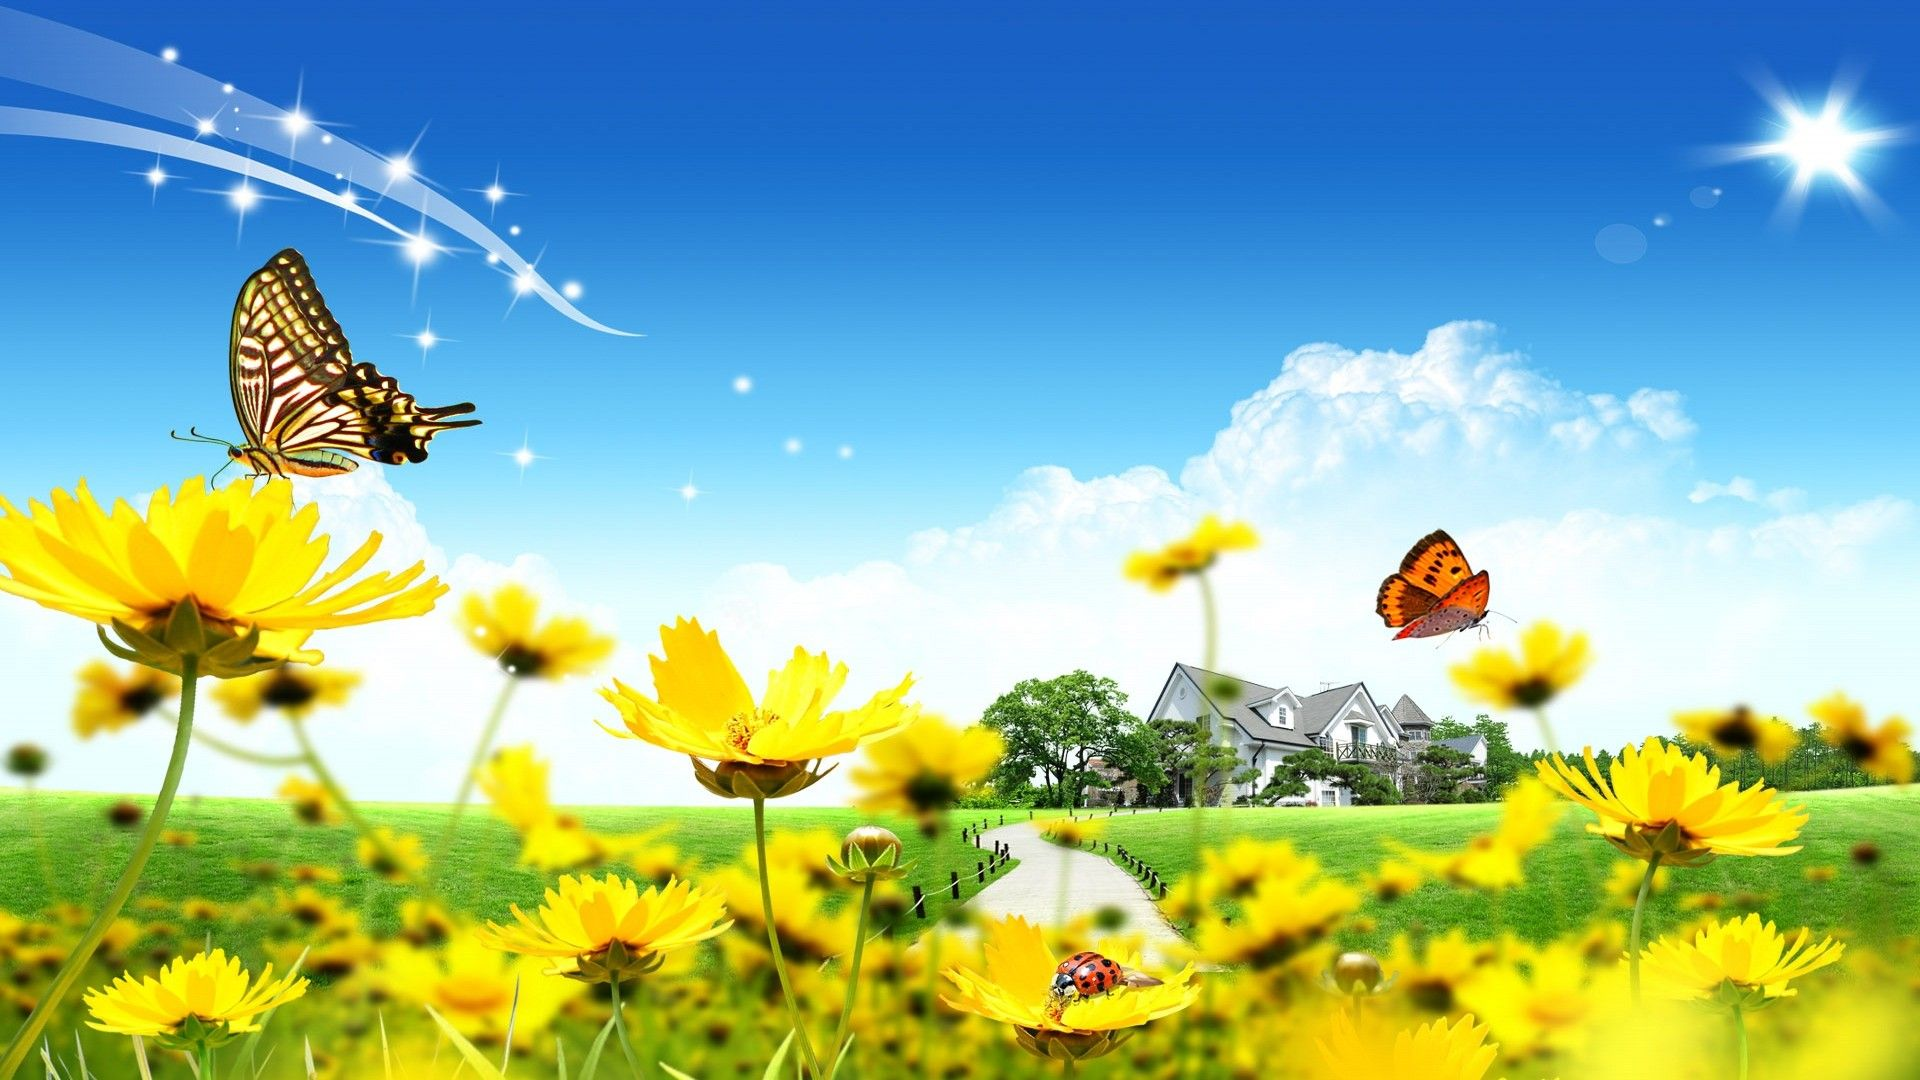 Yellow Sunflowers With Butterflies Scenery Wallpaper